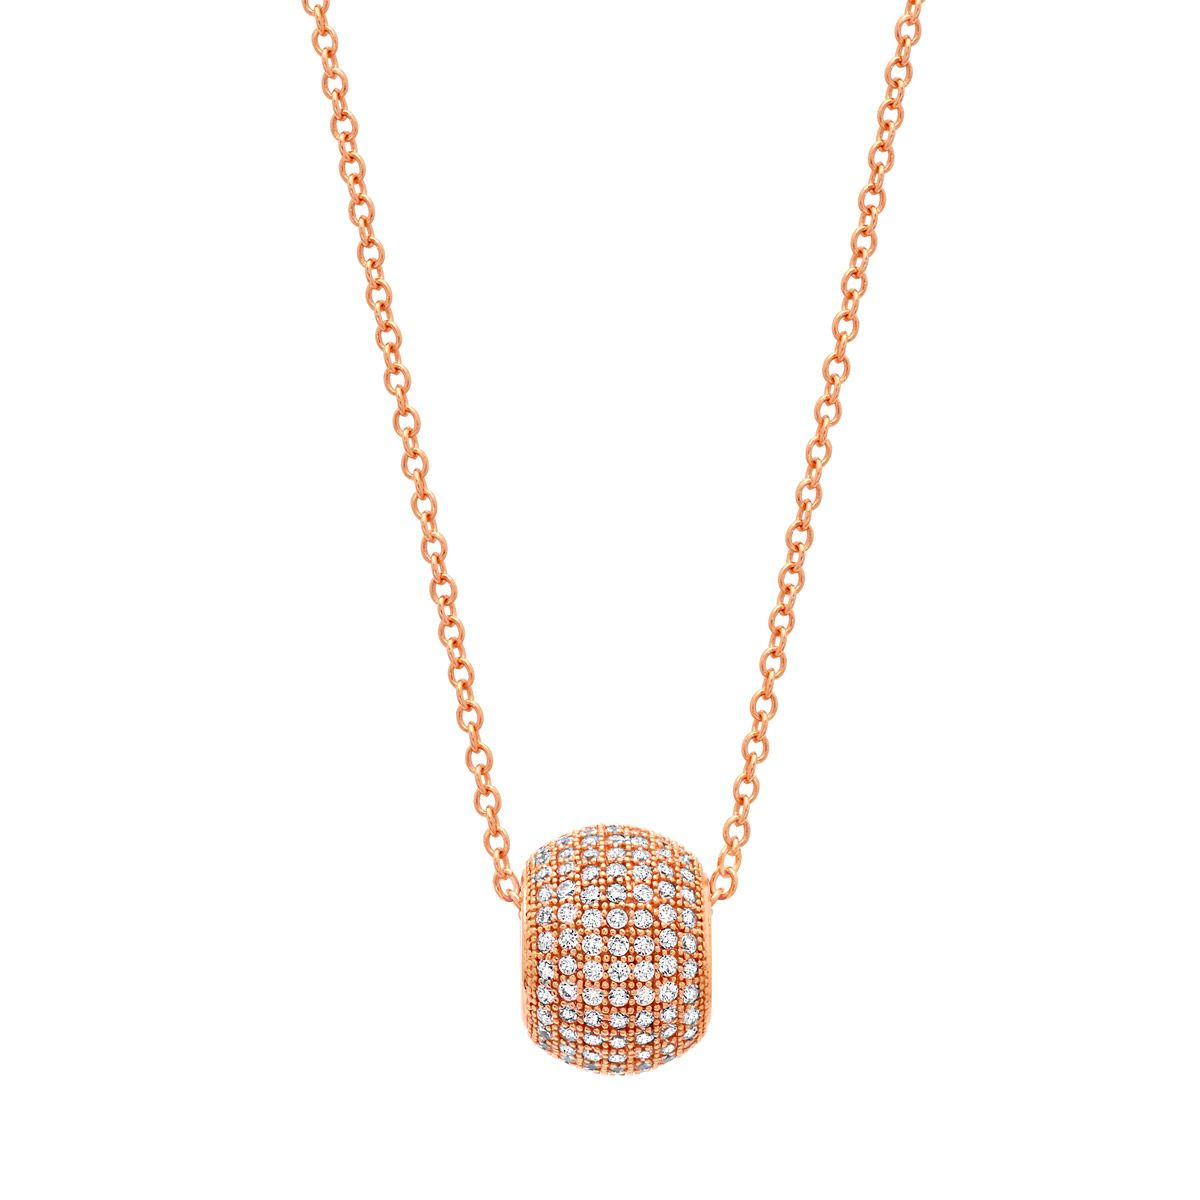 Rose gold and pave - love it.